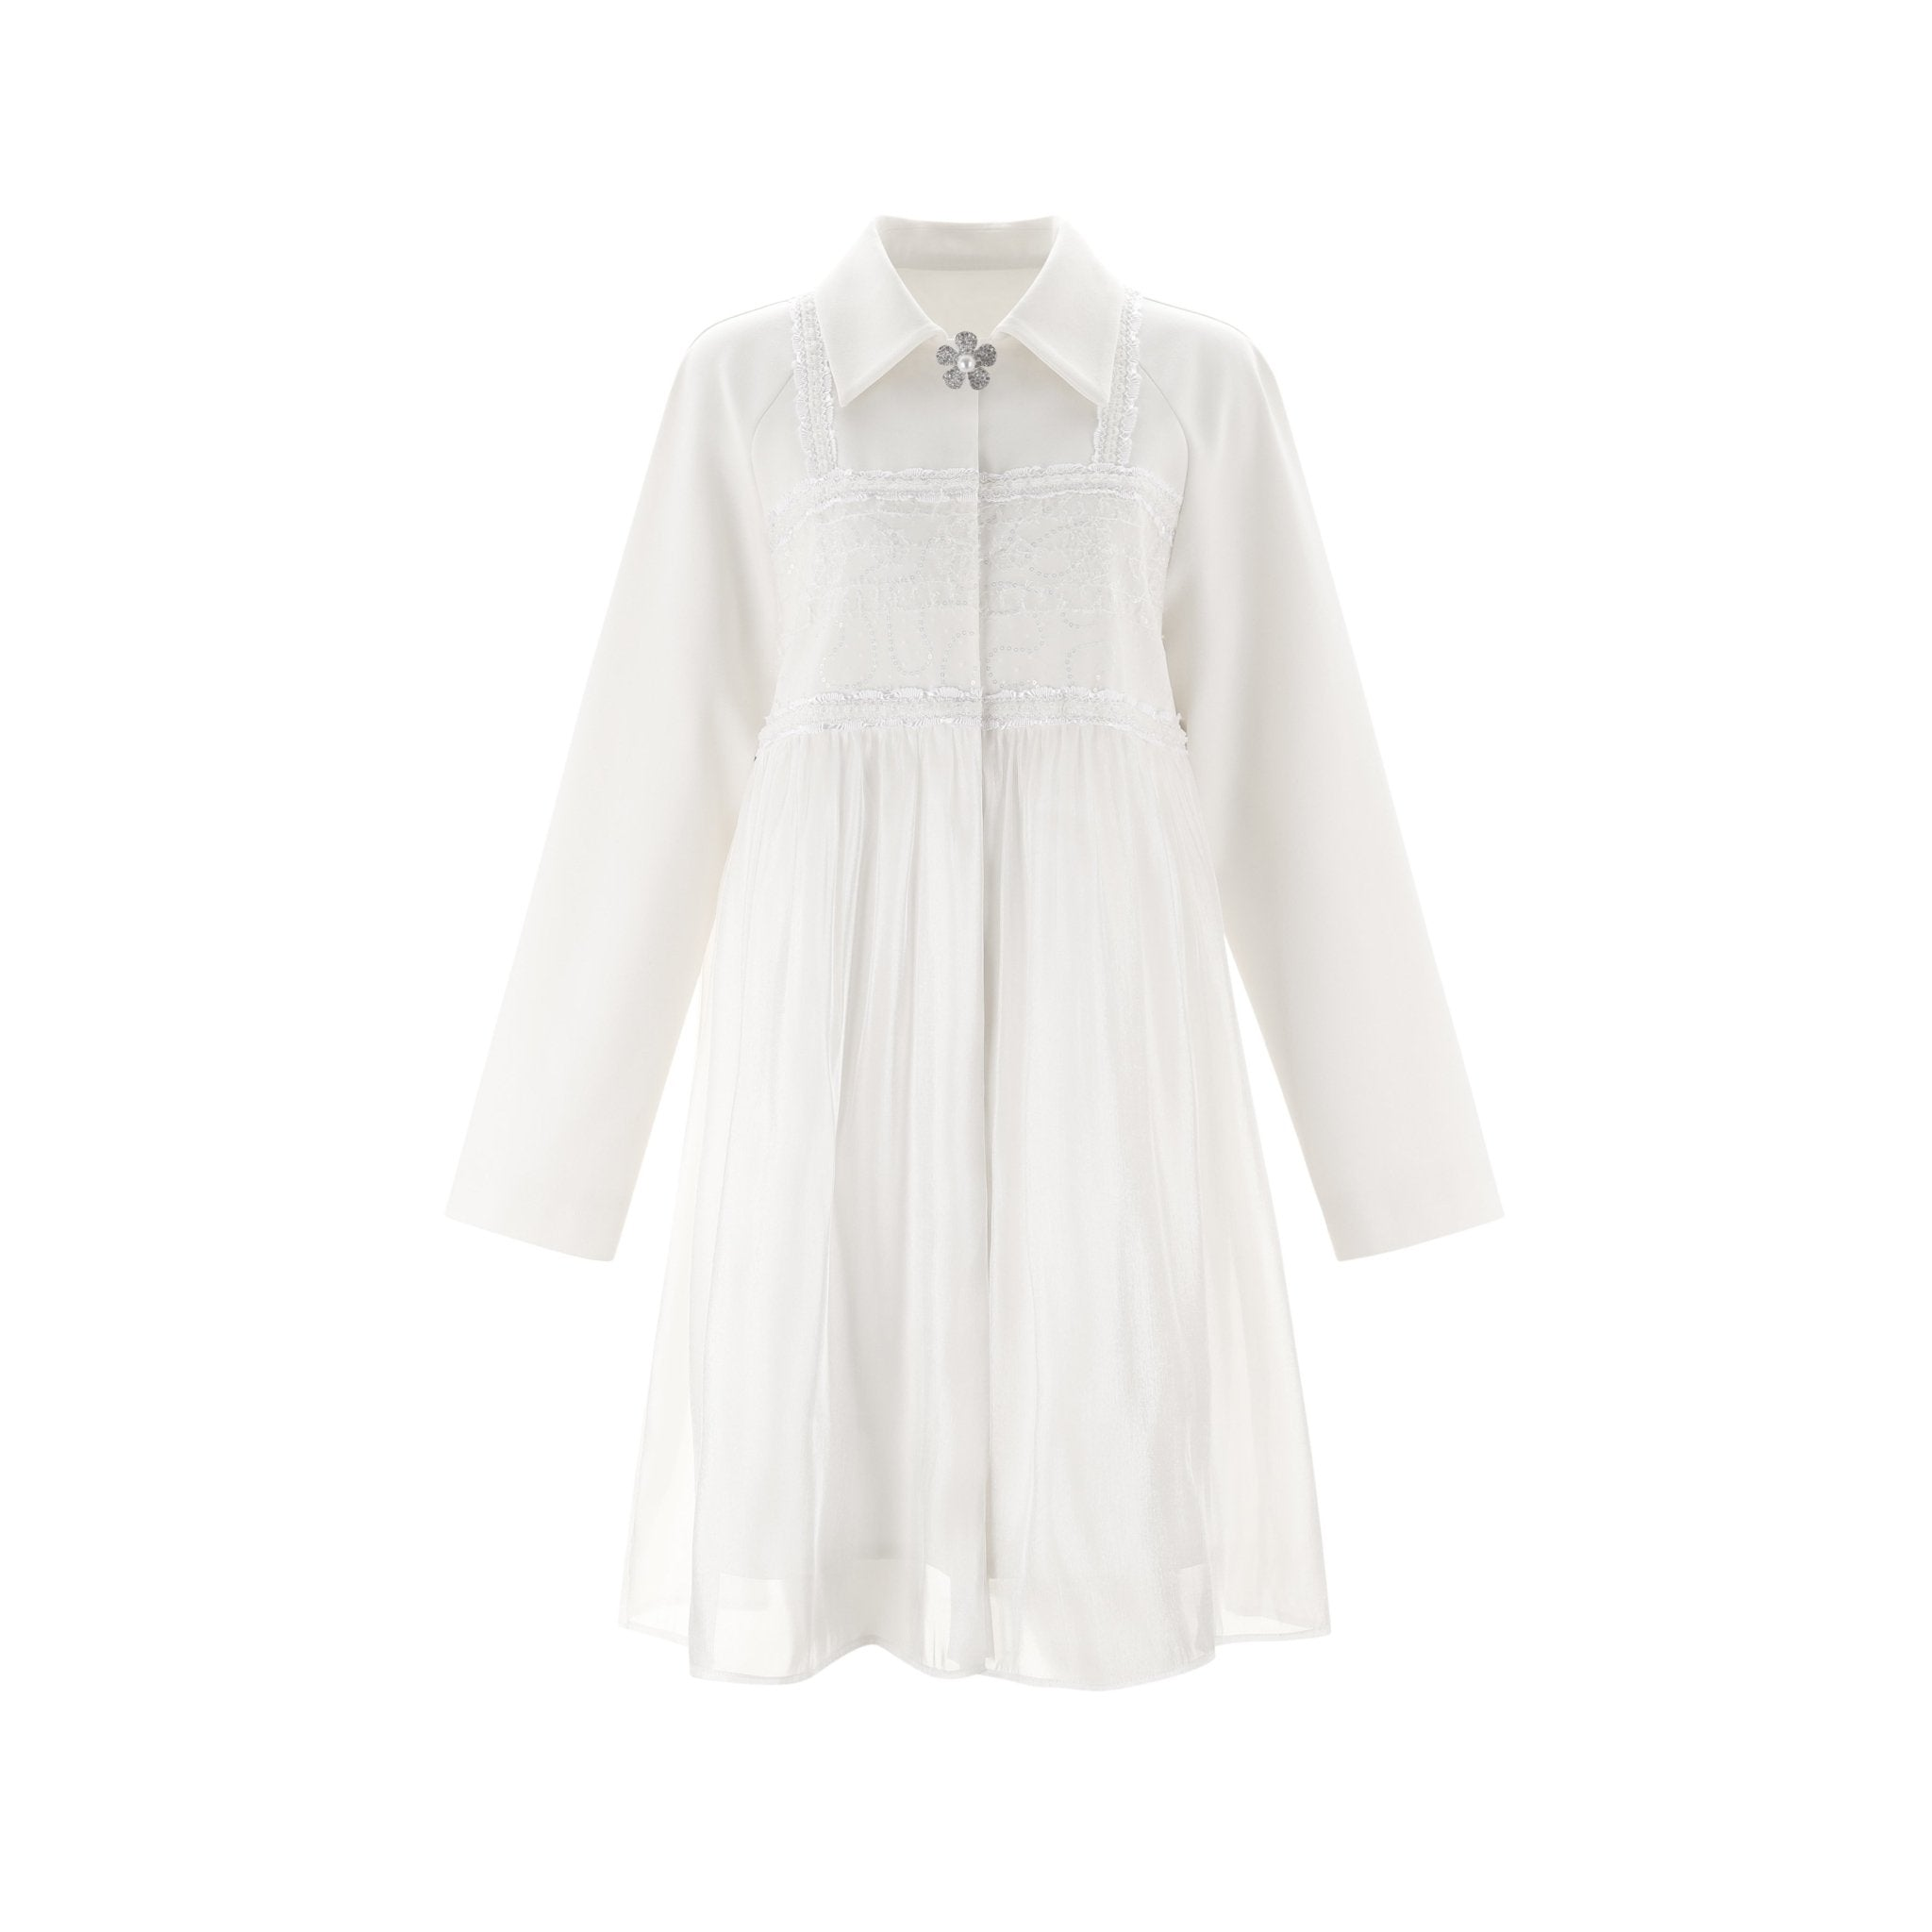 WARM AID White Panelled Mesh Dress | MADA IN CHINA